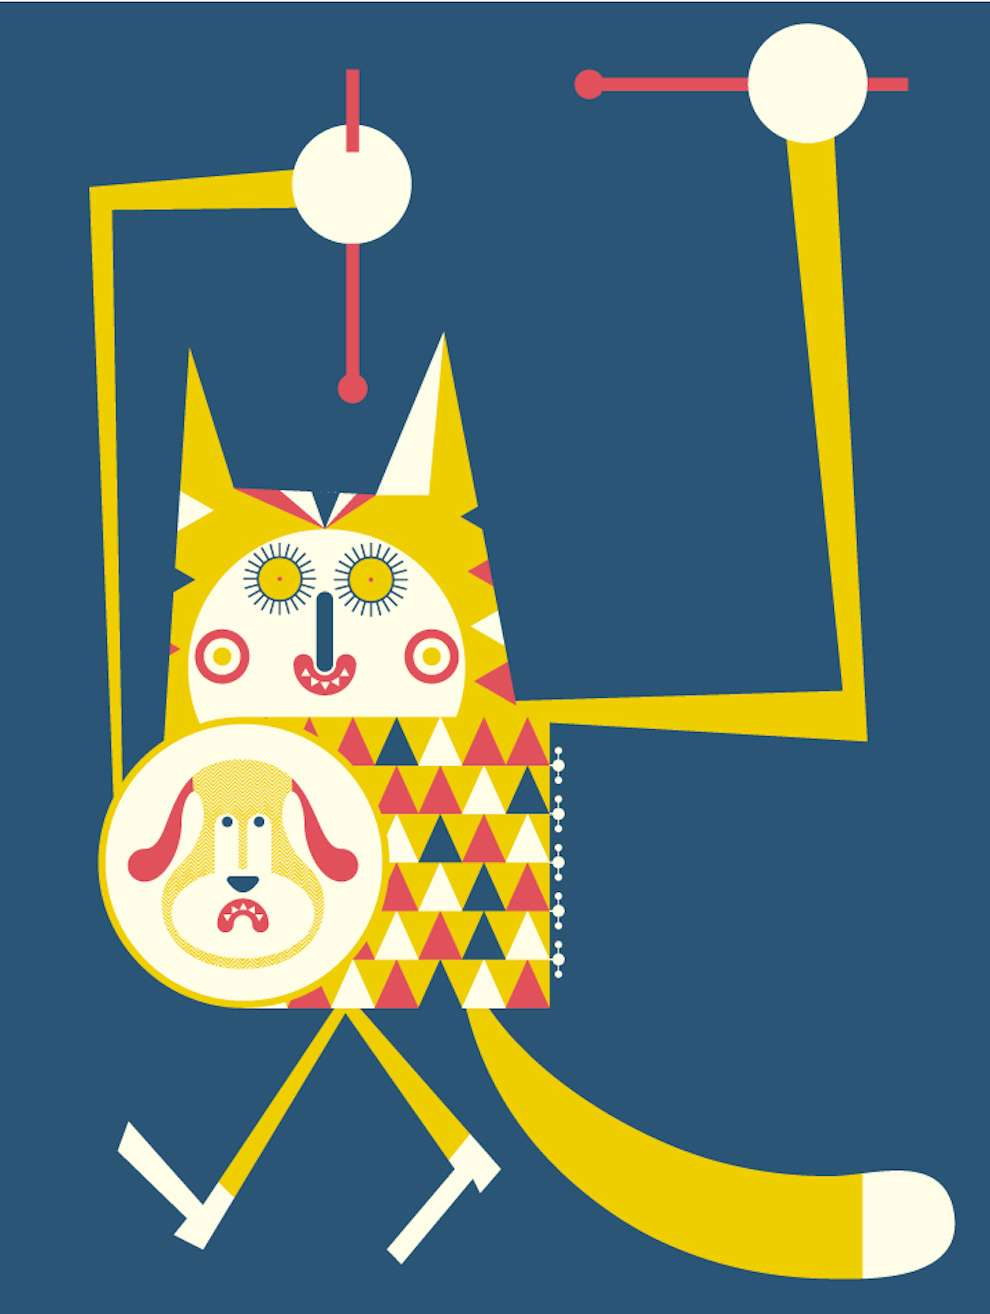 Mick Marston, Bold and graphic illustration of a cat playing drum